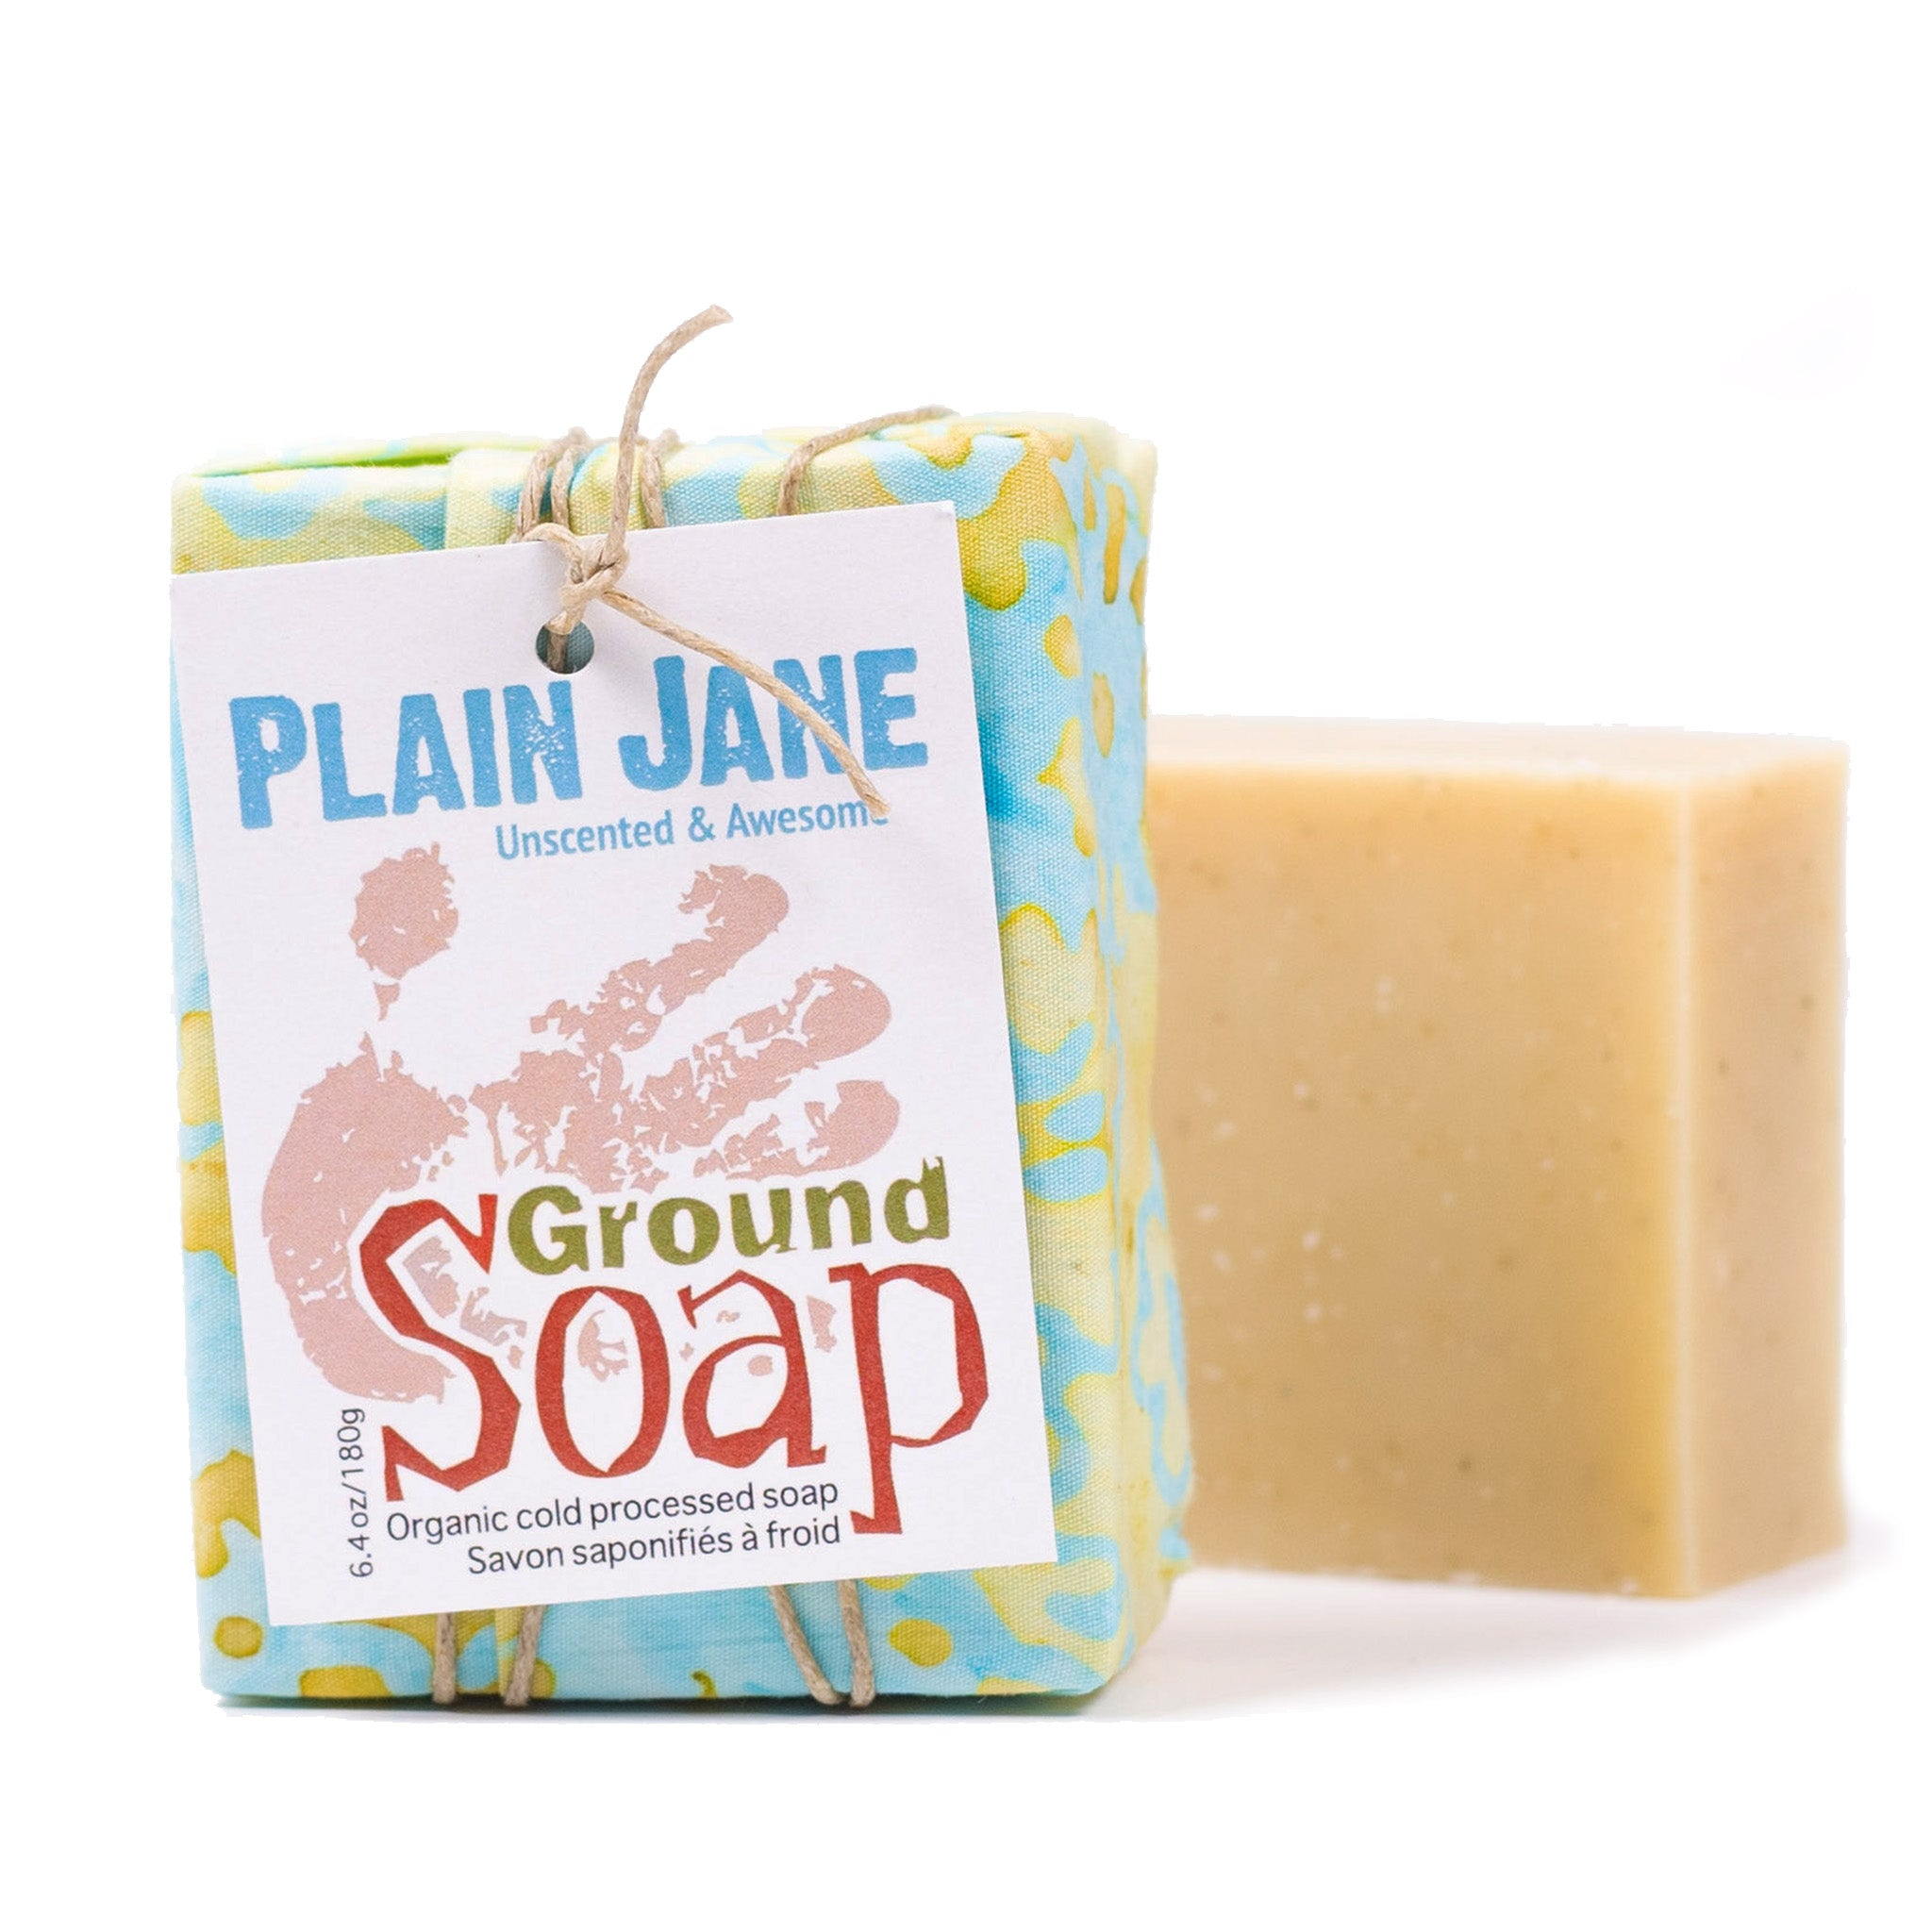 Plain Jane Unscented organic bar soap from ground Soap.